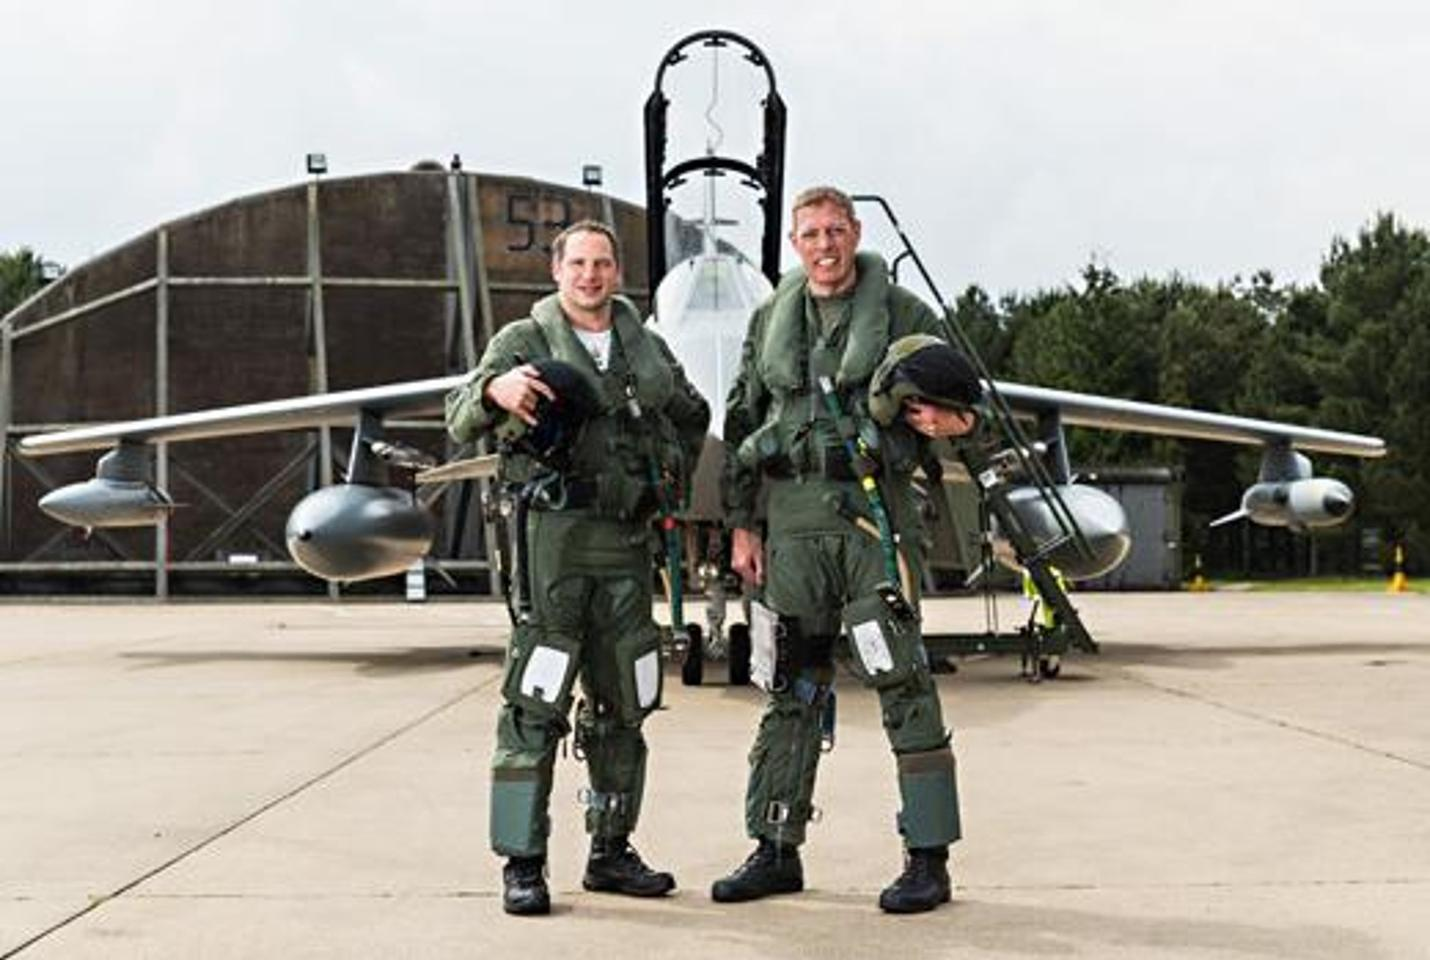 The pilots of the 2014 Normandy Beach recce (Photo: Ministry of Defence)